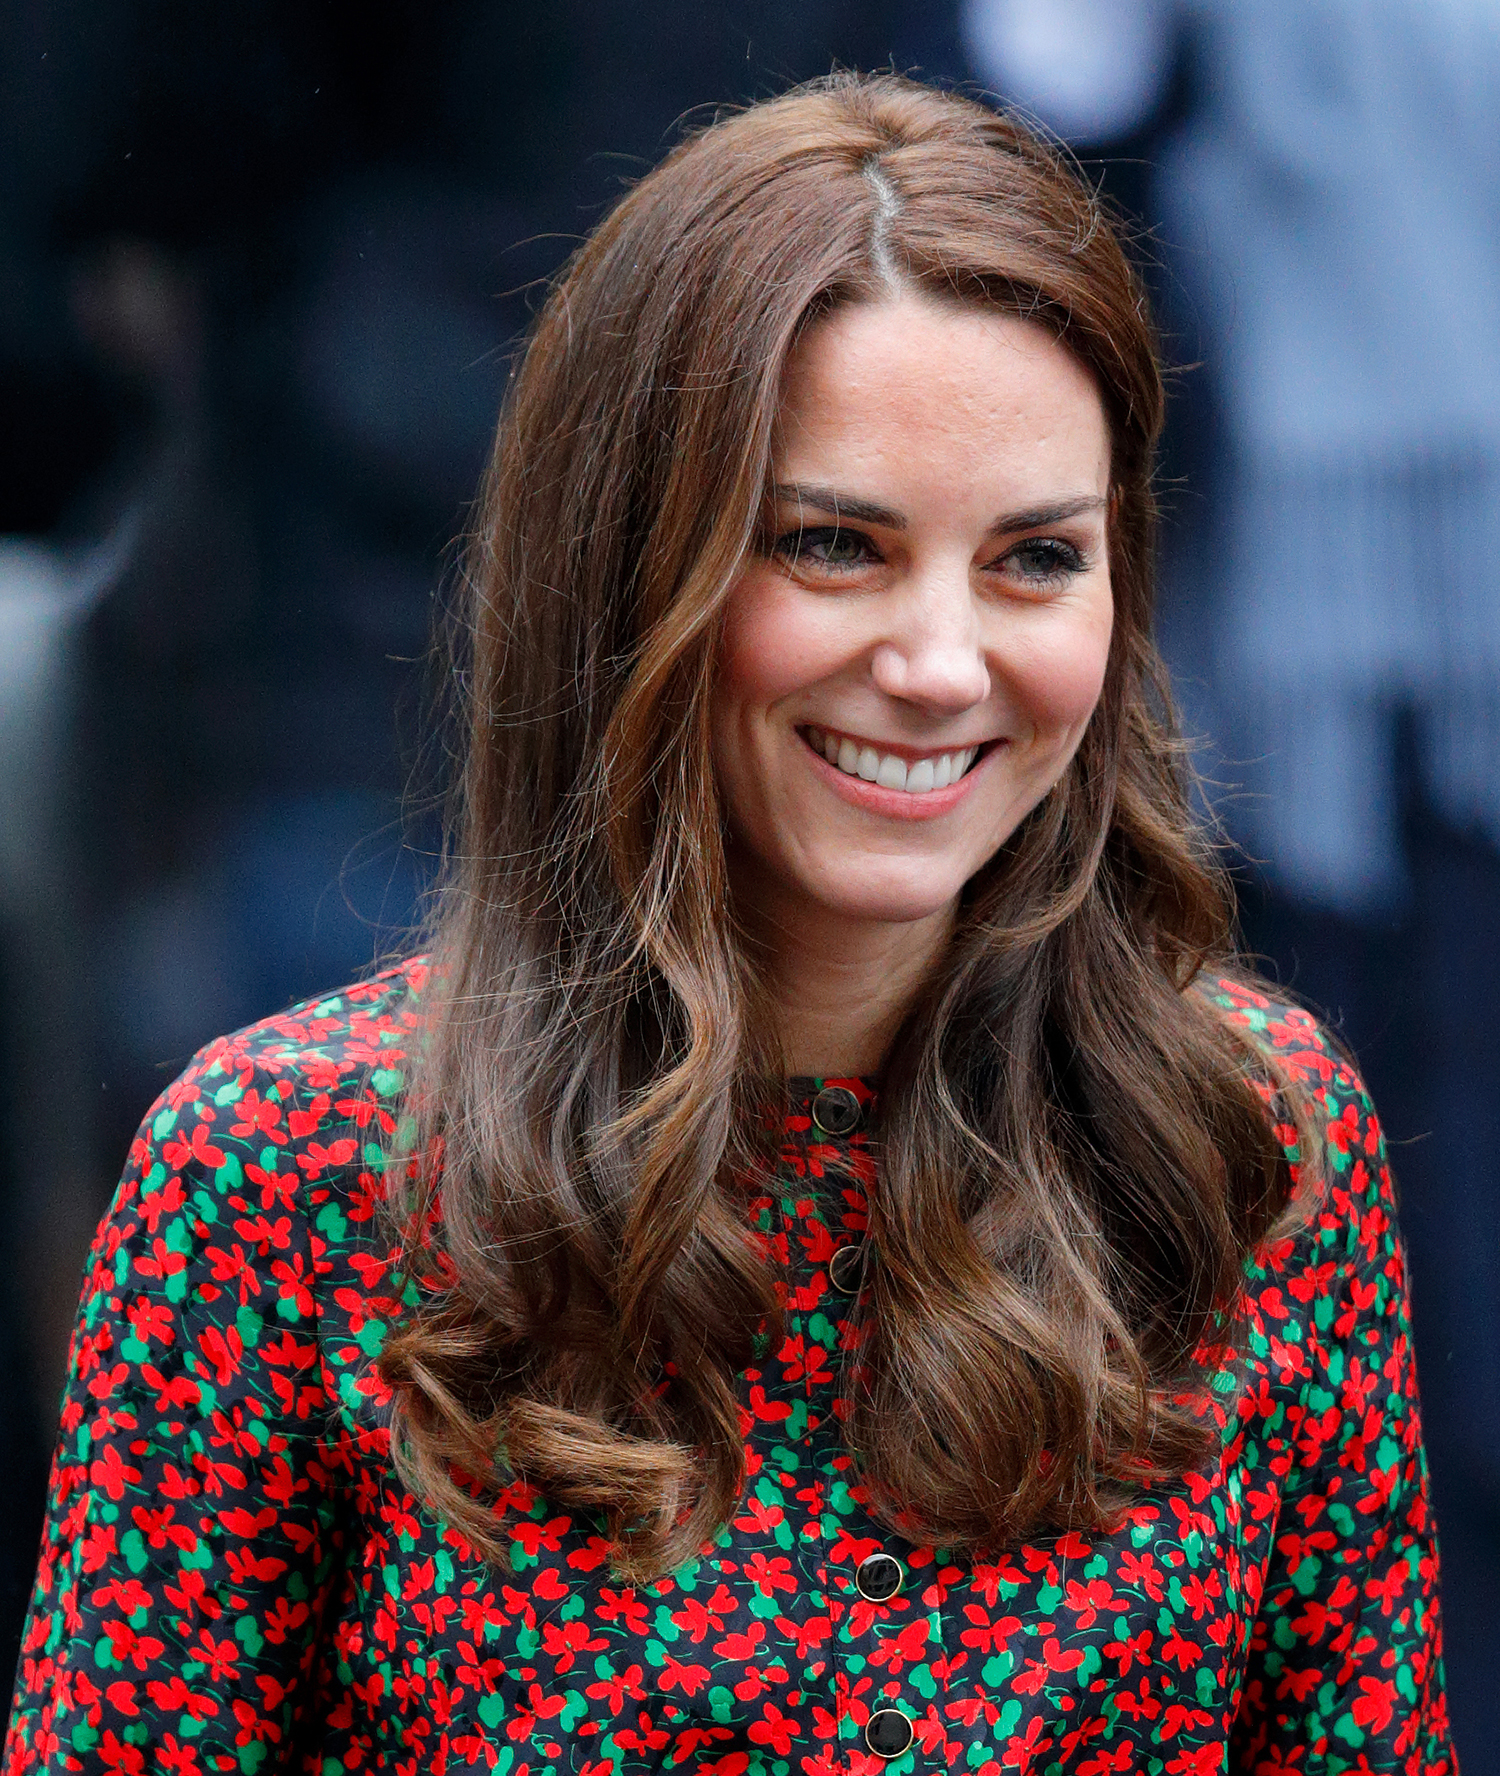 Kate Middleton Smiling in Floral Dress